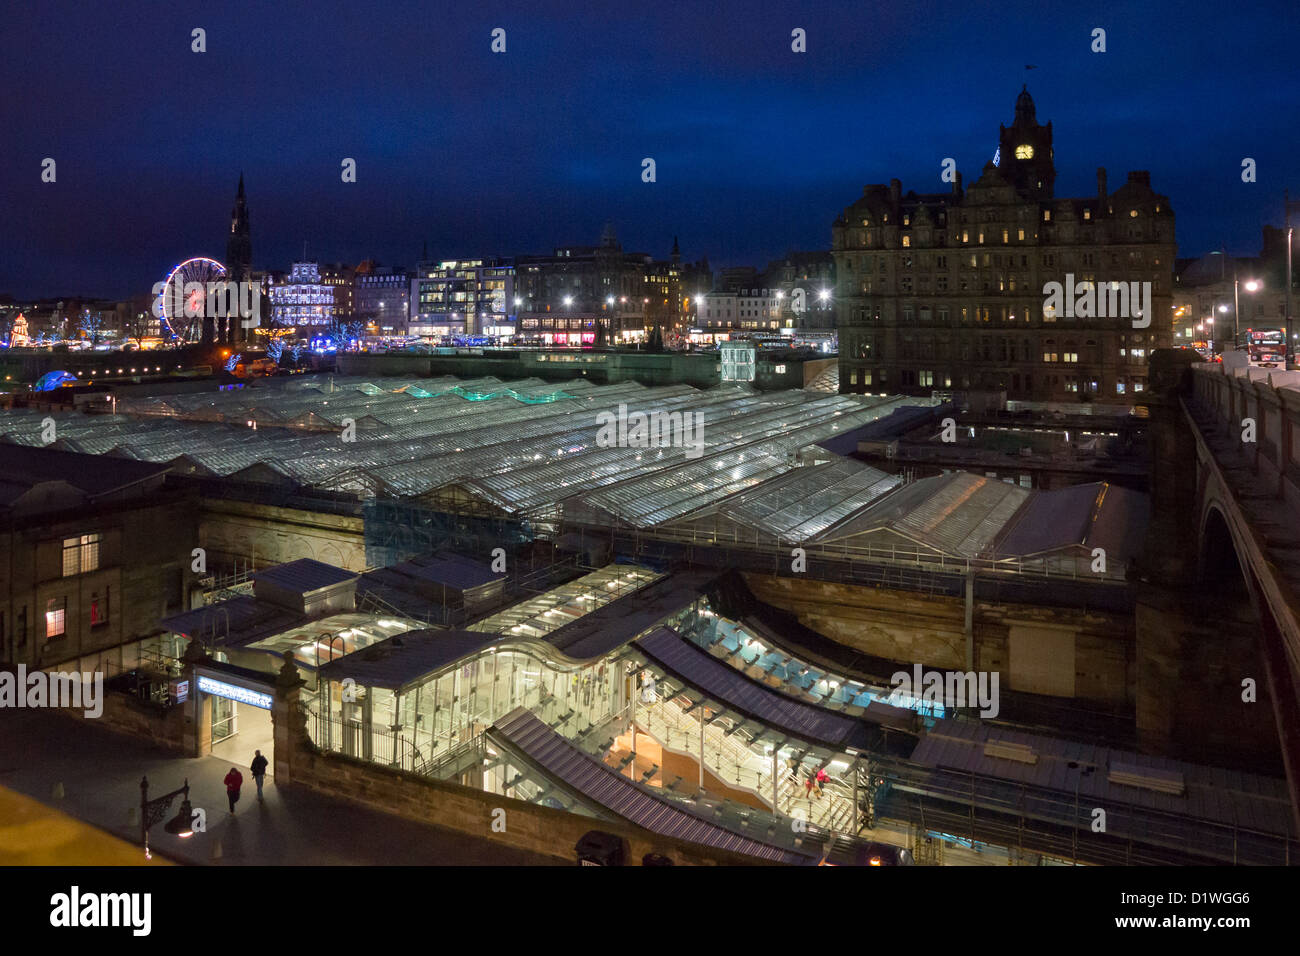 Night view of the new glass roof on Waverley Railway Station in Edinburgh Scotland with Xmas entertainment lights - Stock Image